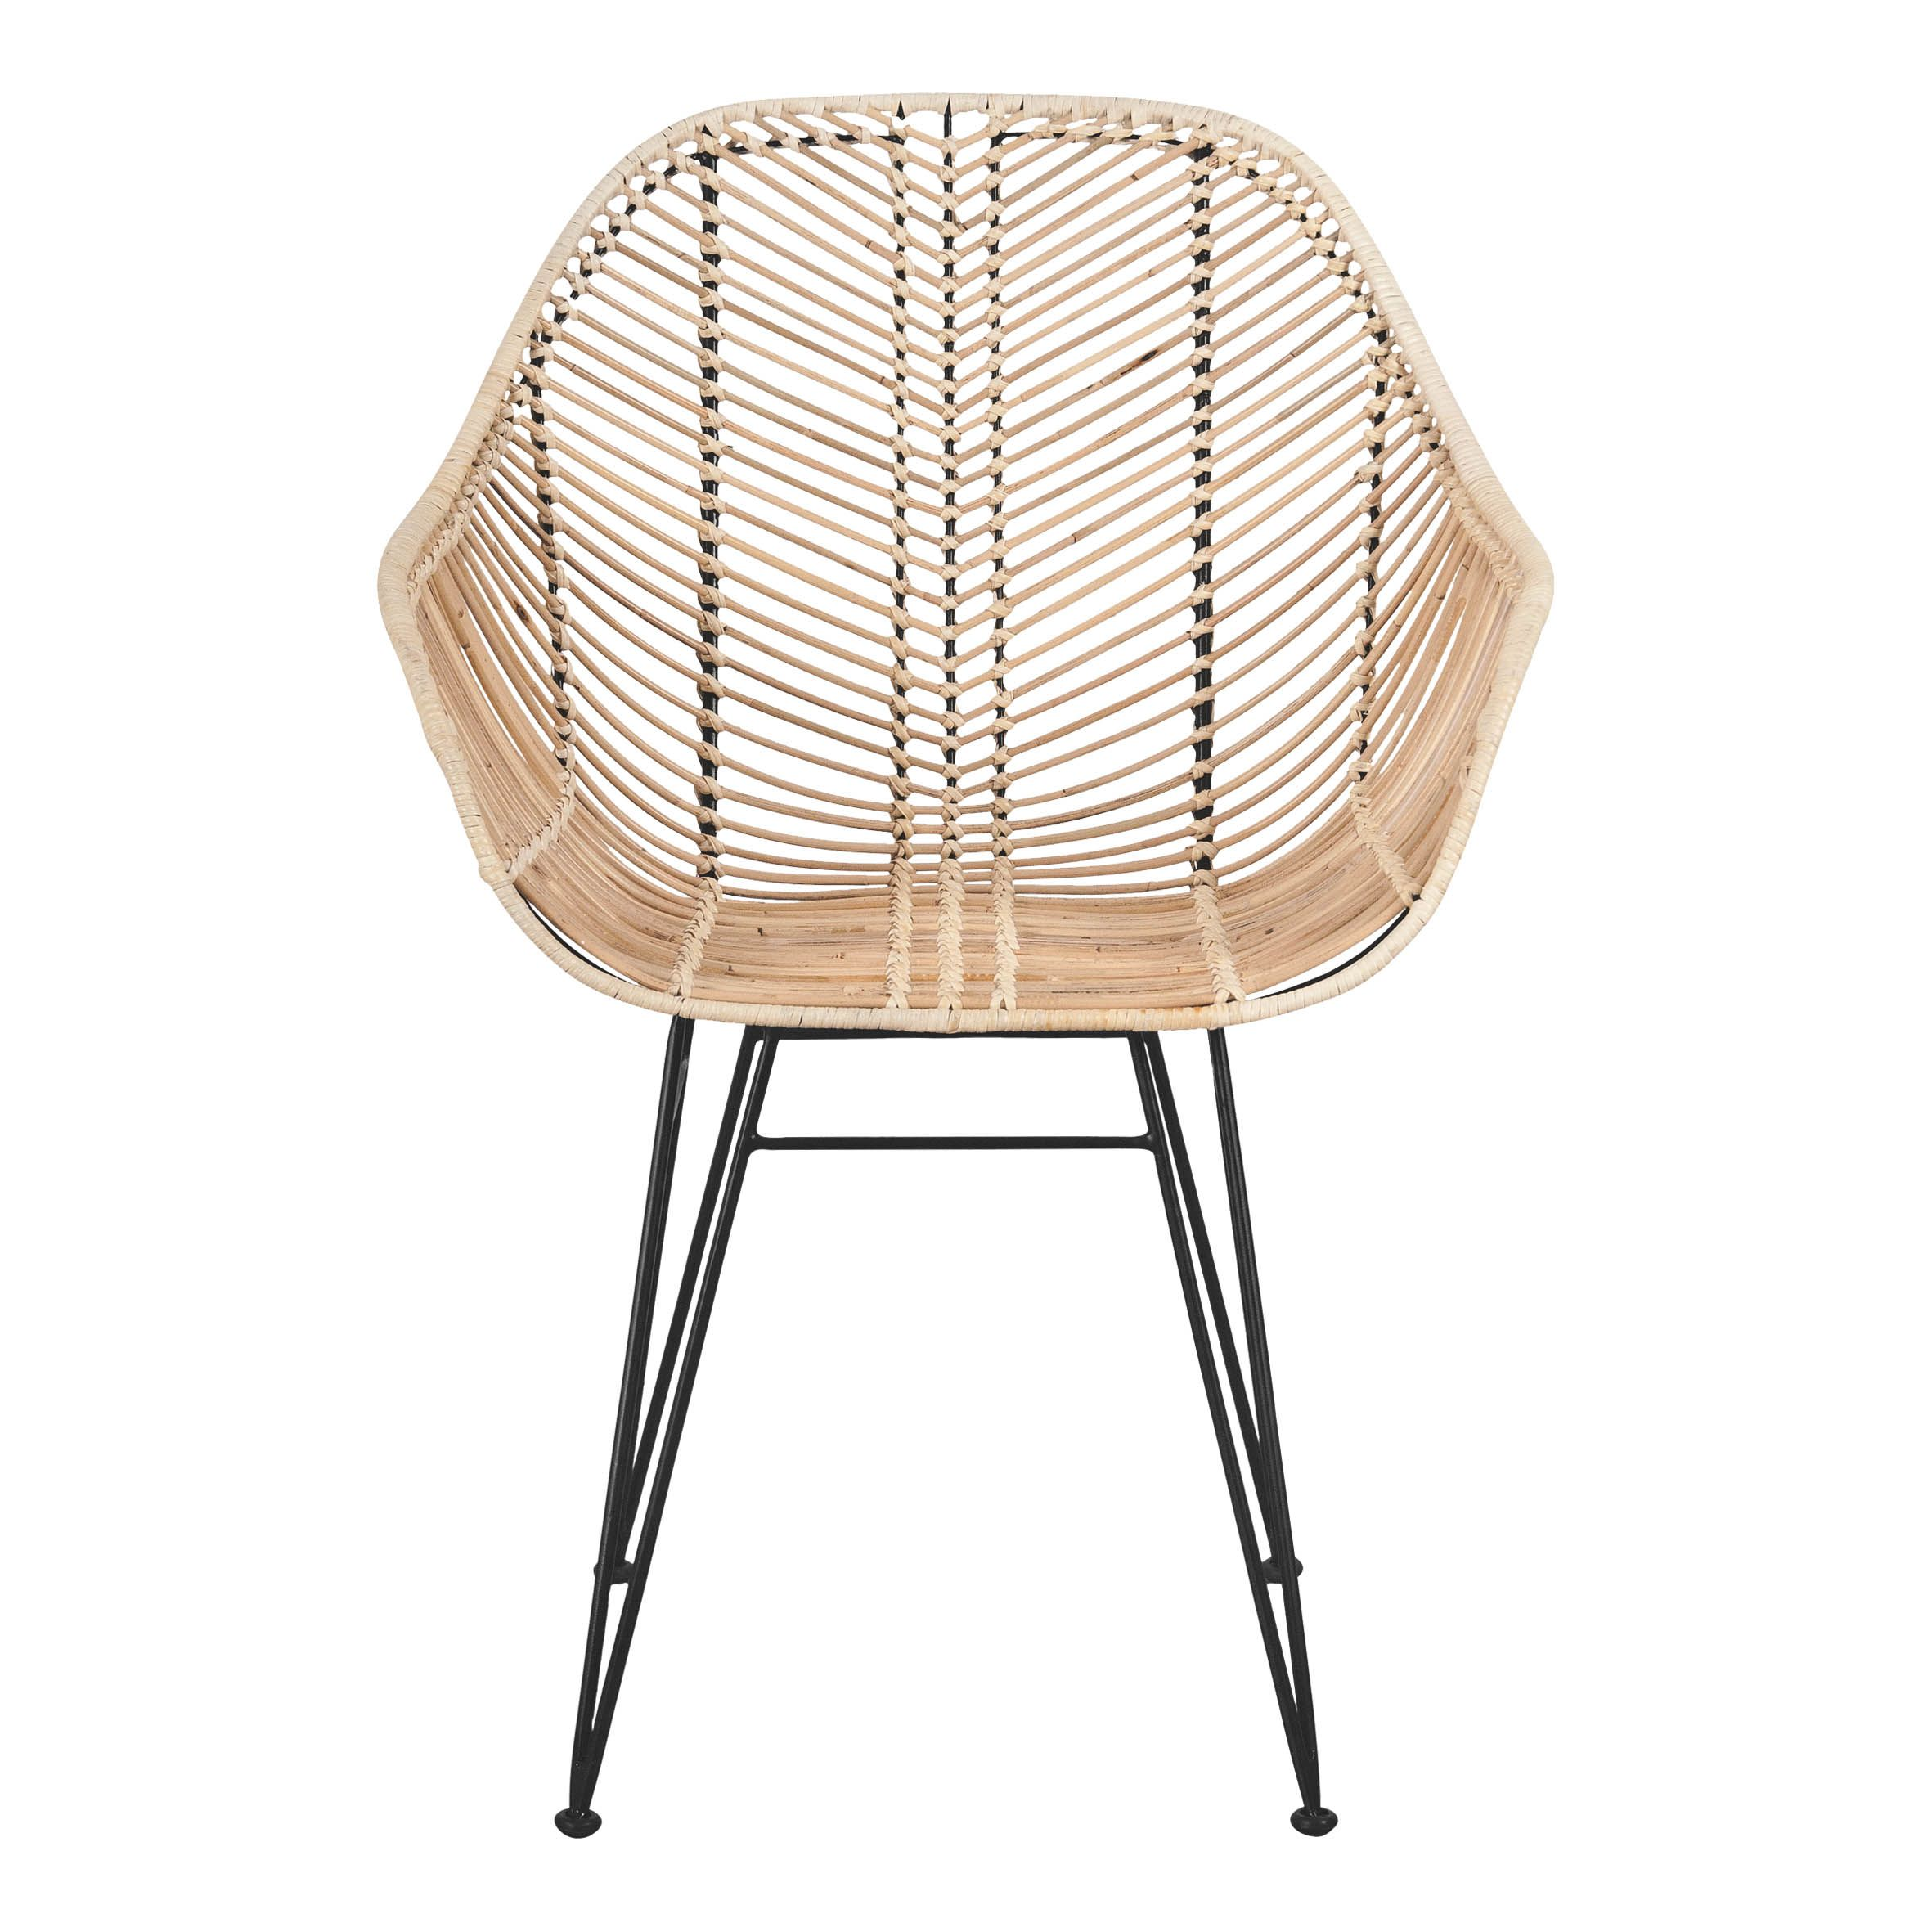 Zulu Chair Natural The Family Love Tree Chair Occasional Chairs Wicker Chair